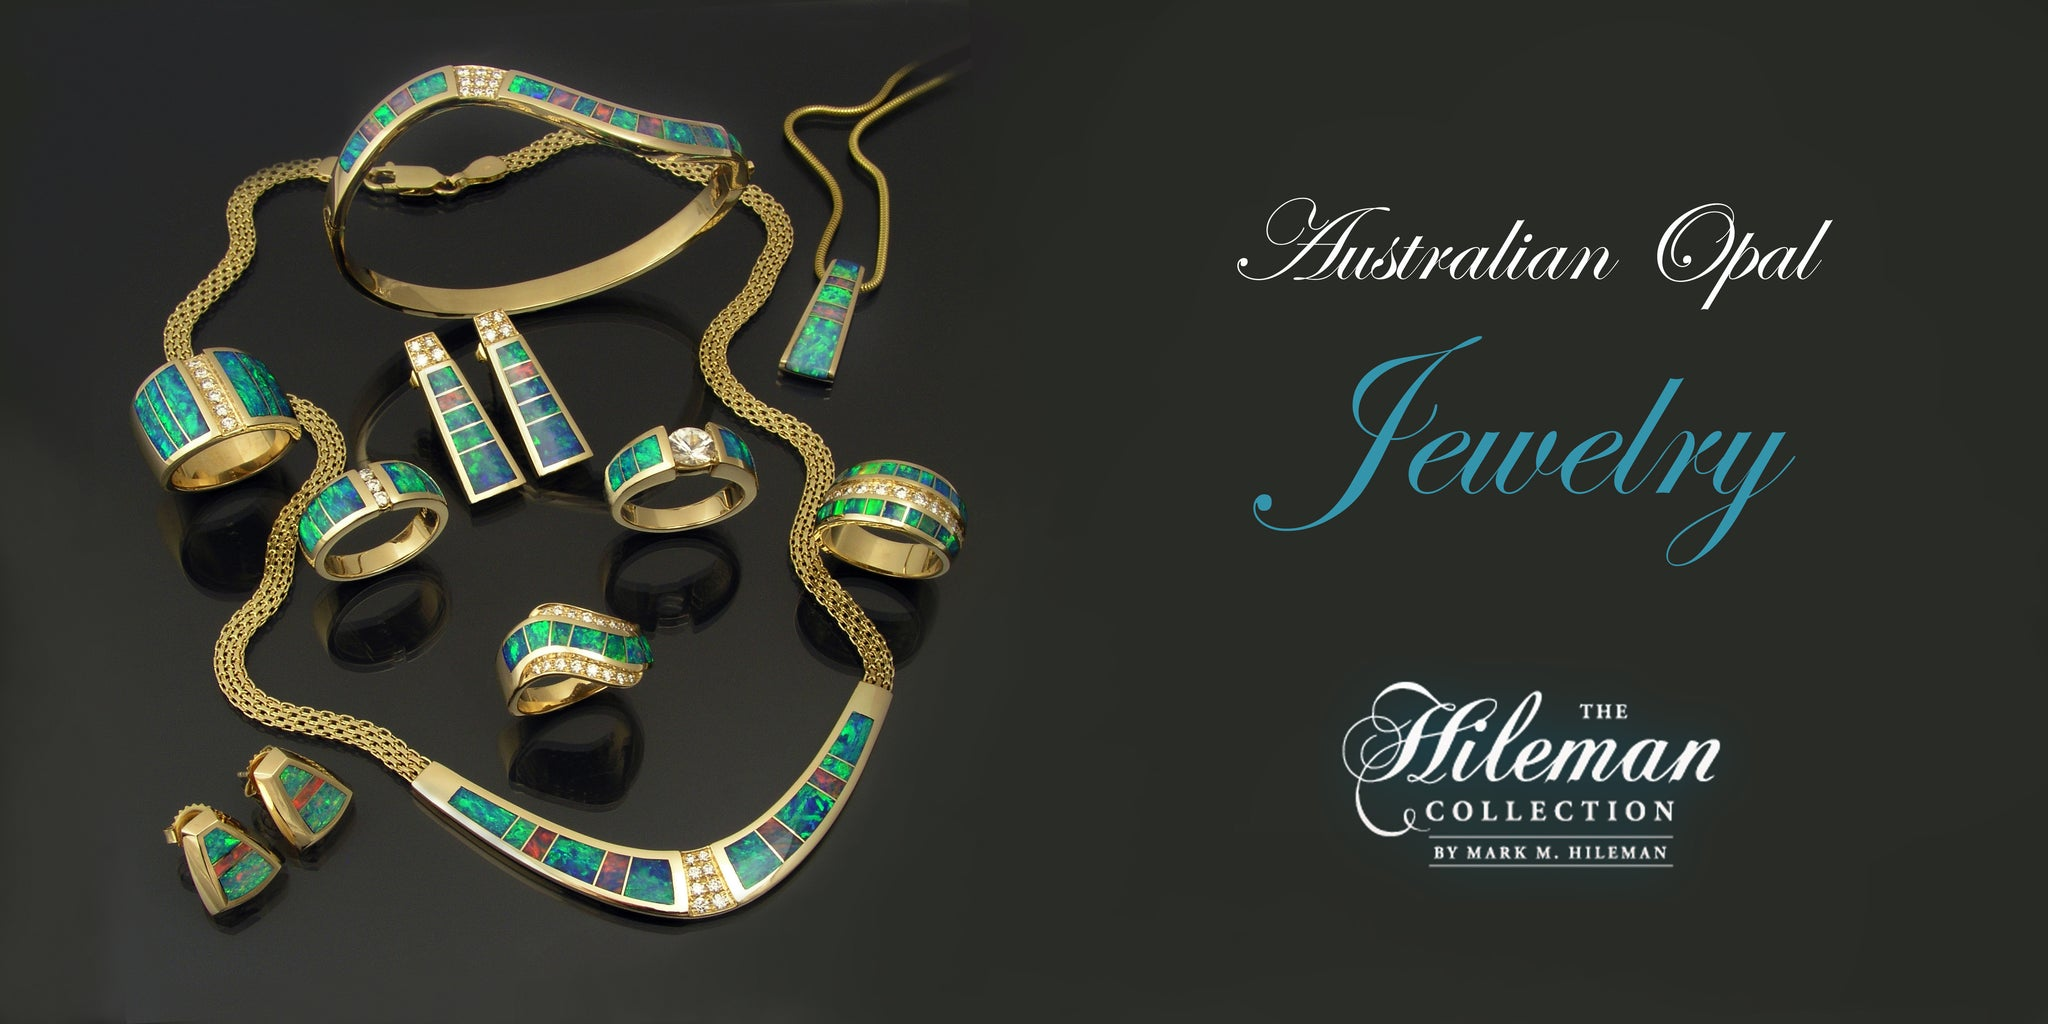 Australian opal jewelry by The Hileman Collection